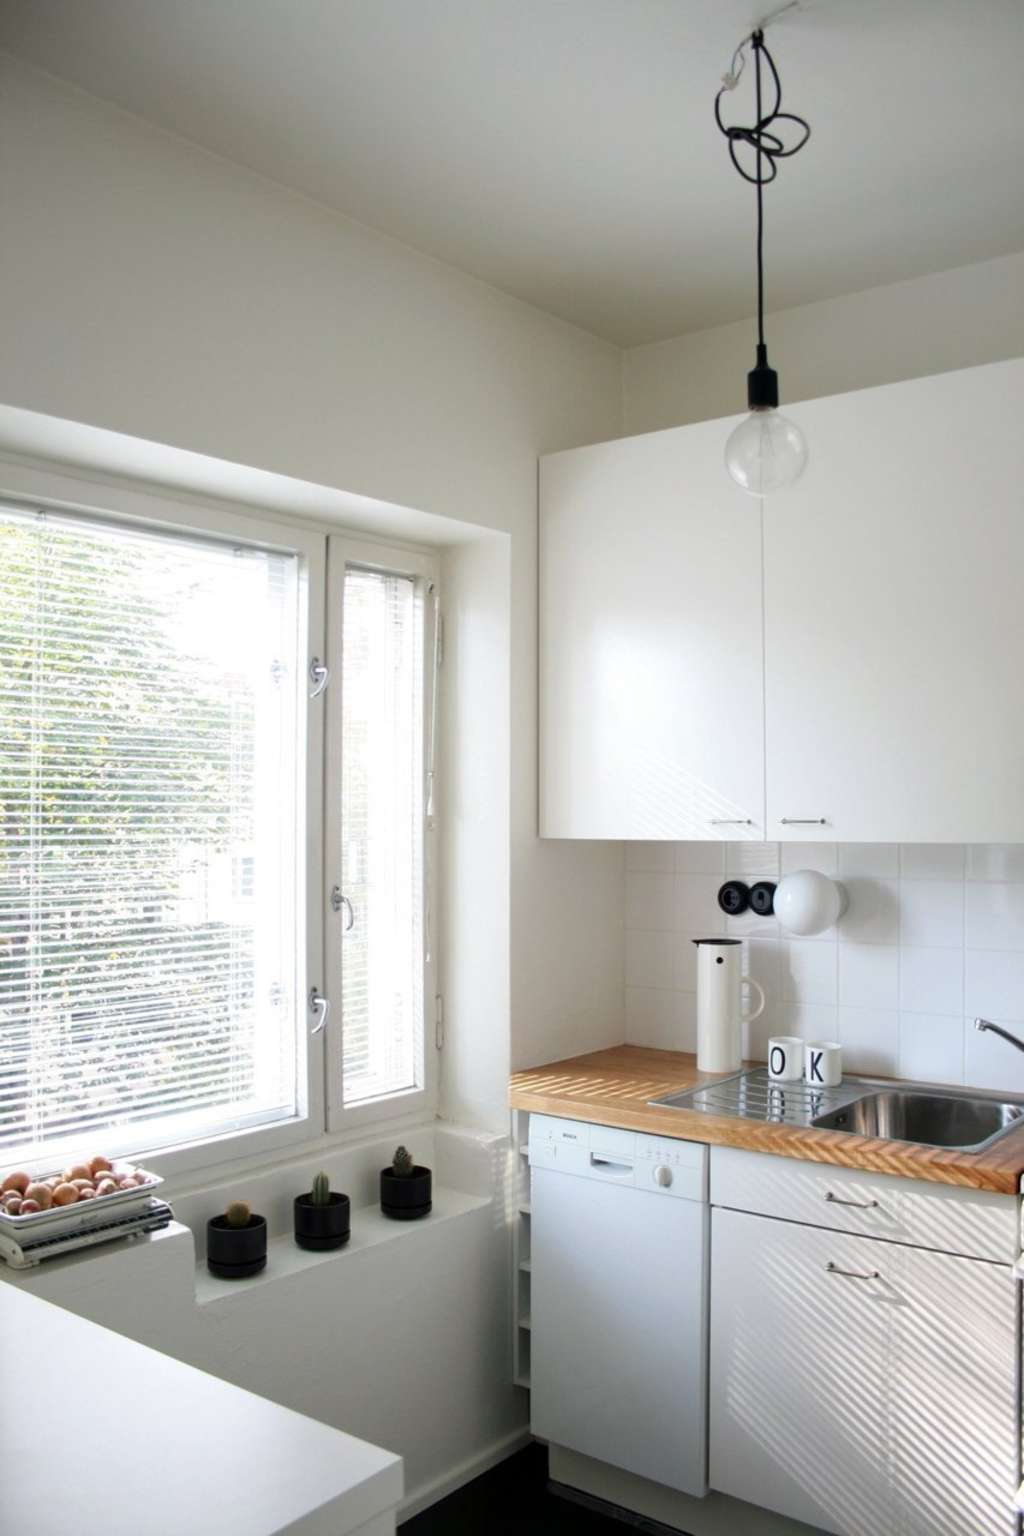 How To Downsize a Kitchen: 8 Tips for Owning Less in the Most Space-Sucking Room in the House